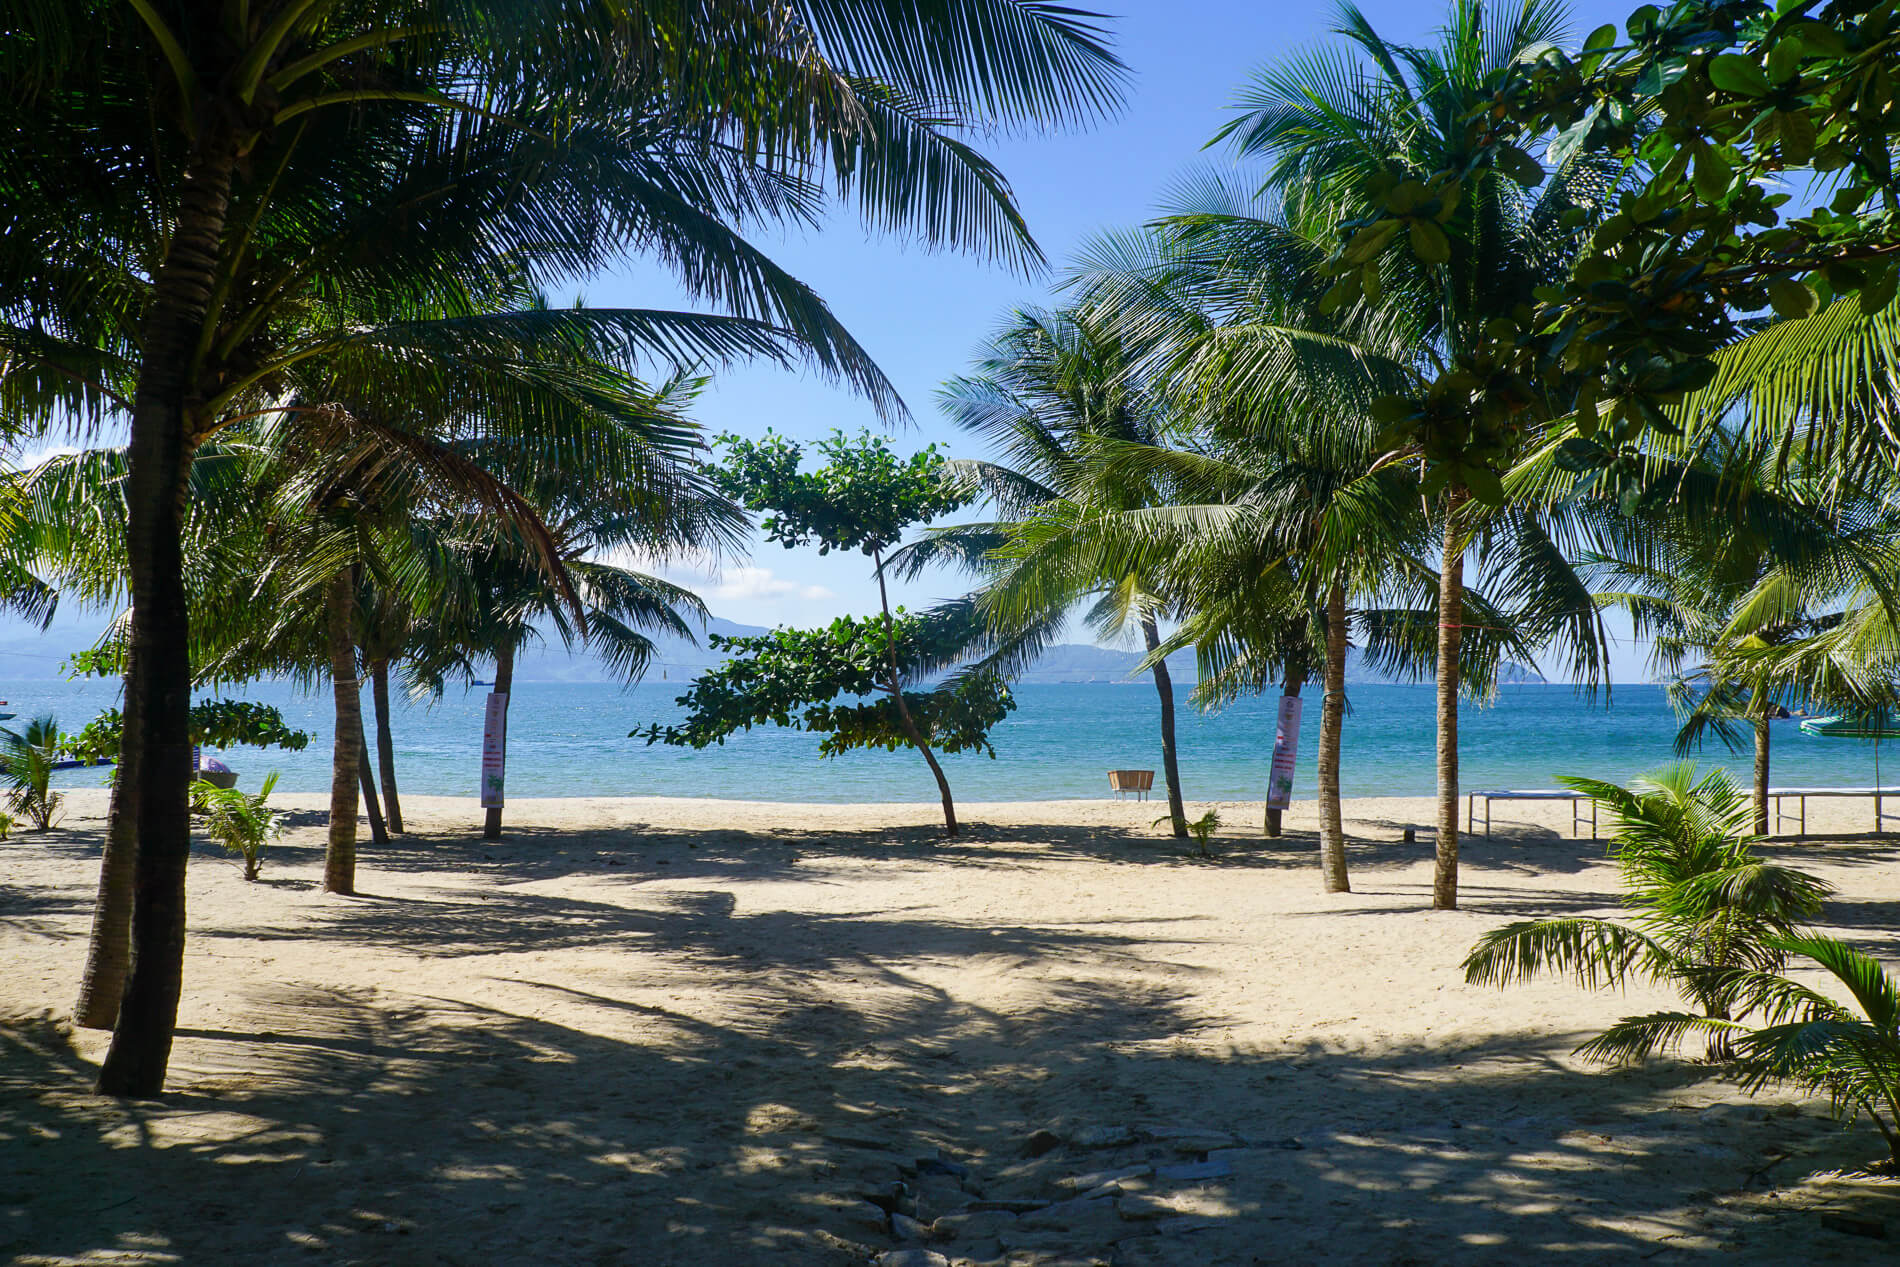 Palm trees line a stretch of secluded beach near Da Nang